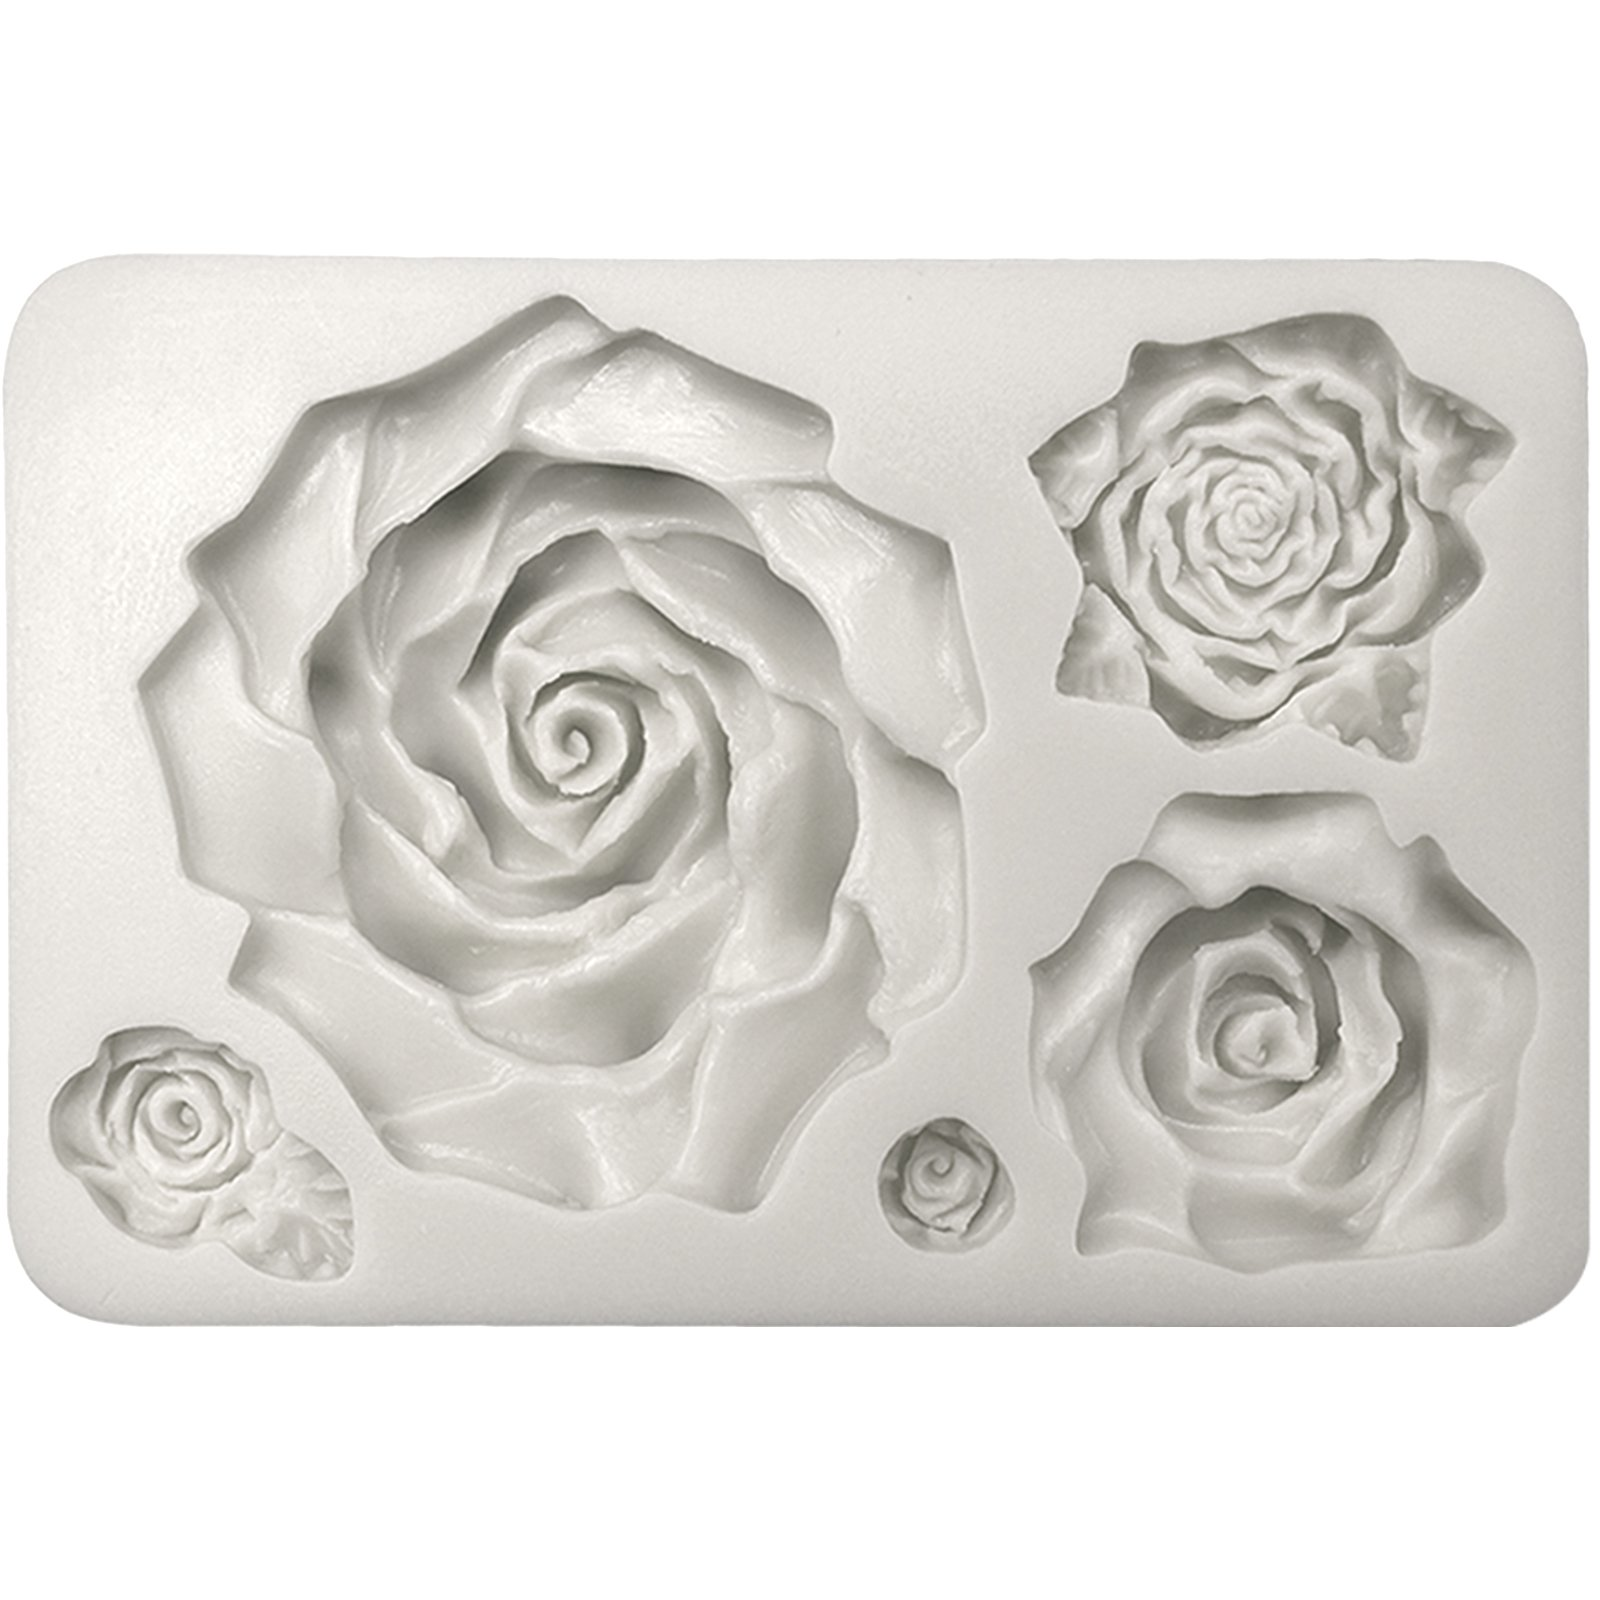 Funshowcase Large 5 Assorted Sizes Roses Resin Fondant Candy Silicone Mold for Sugarcraft, Cake Decoration, Cupcake Topper, Chocolate, Butter, Jewelry, Polymer Clay, Soap Making 13.3x8.5x2.2cm by FUNSHOWCASE